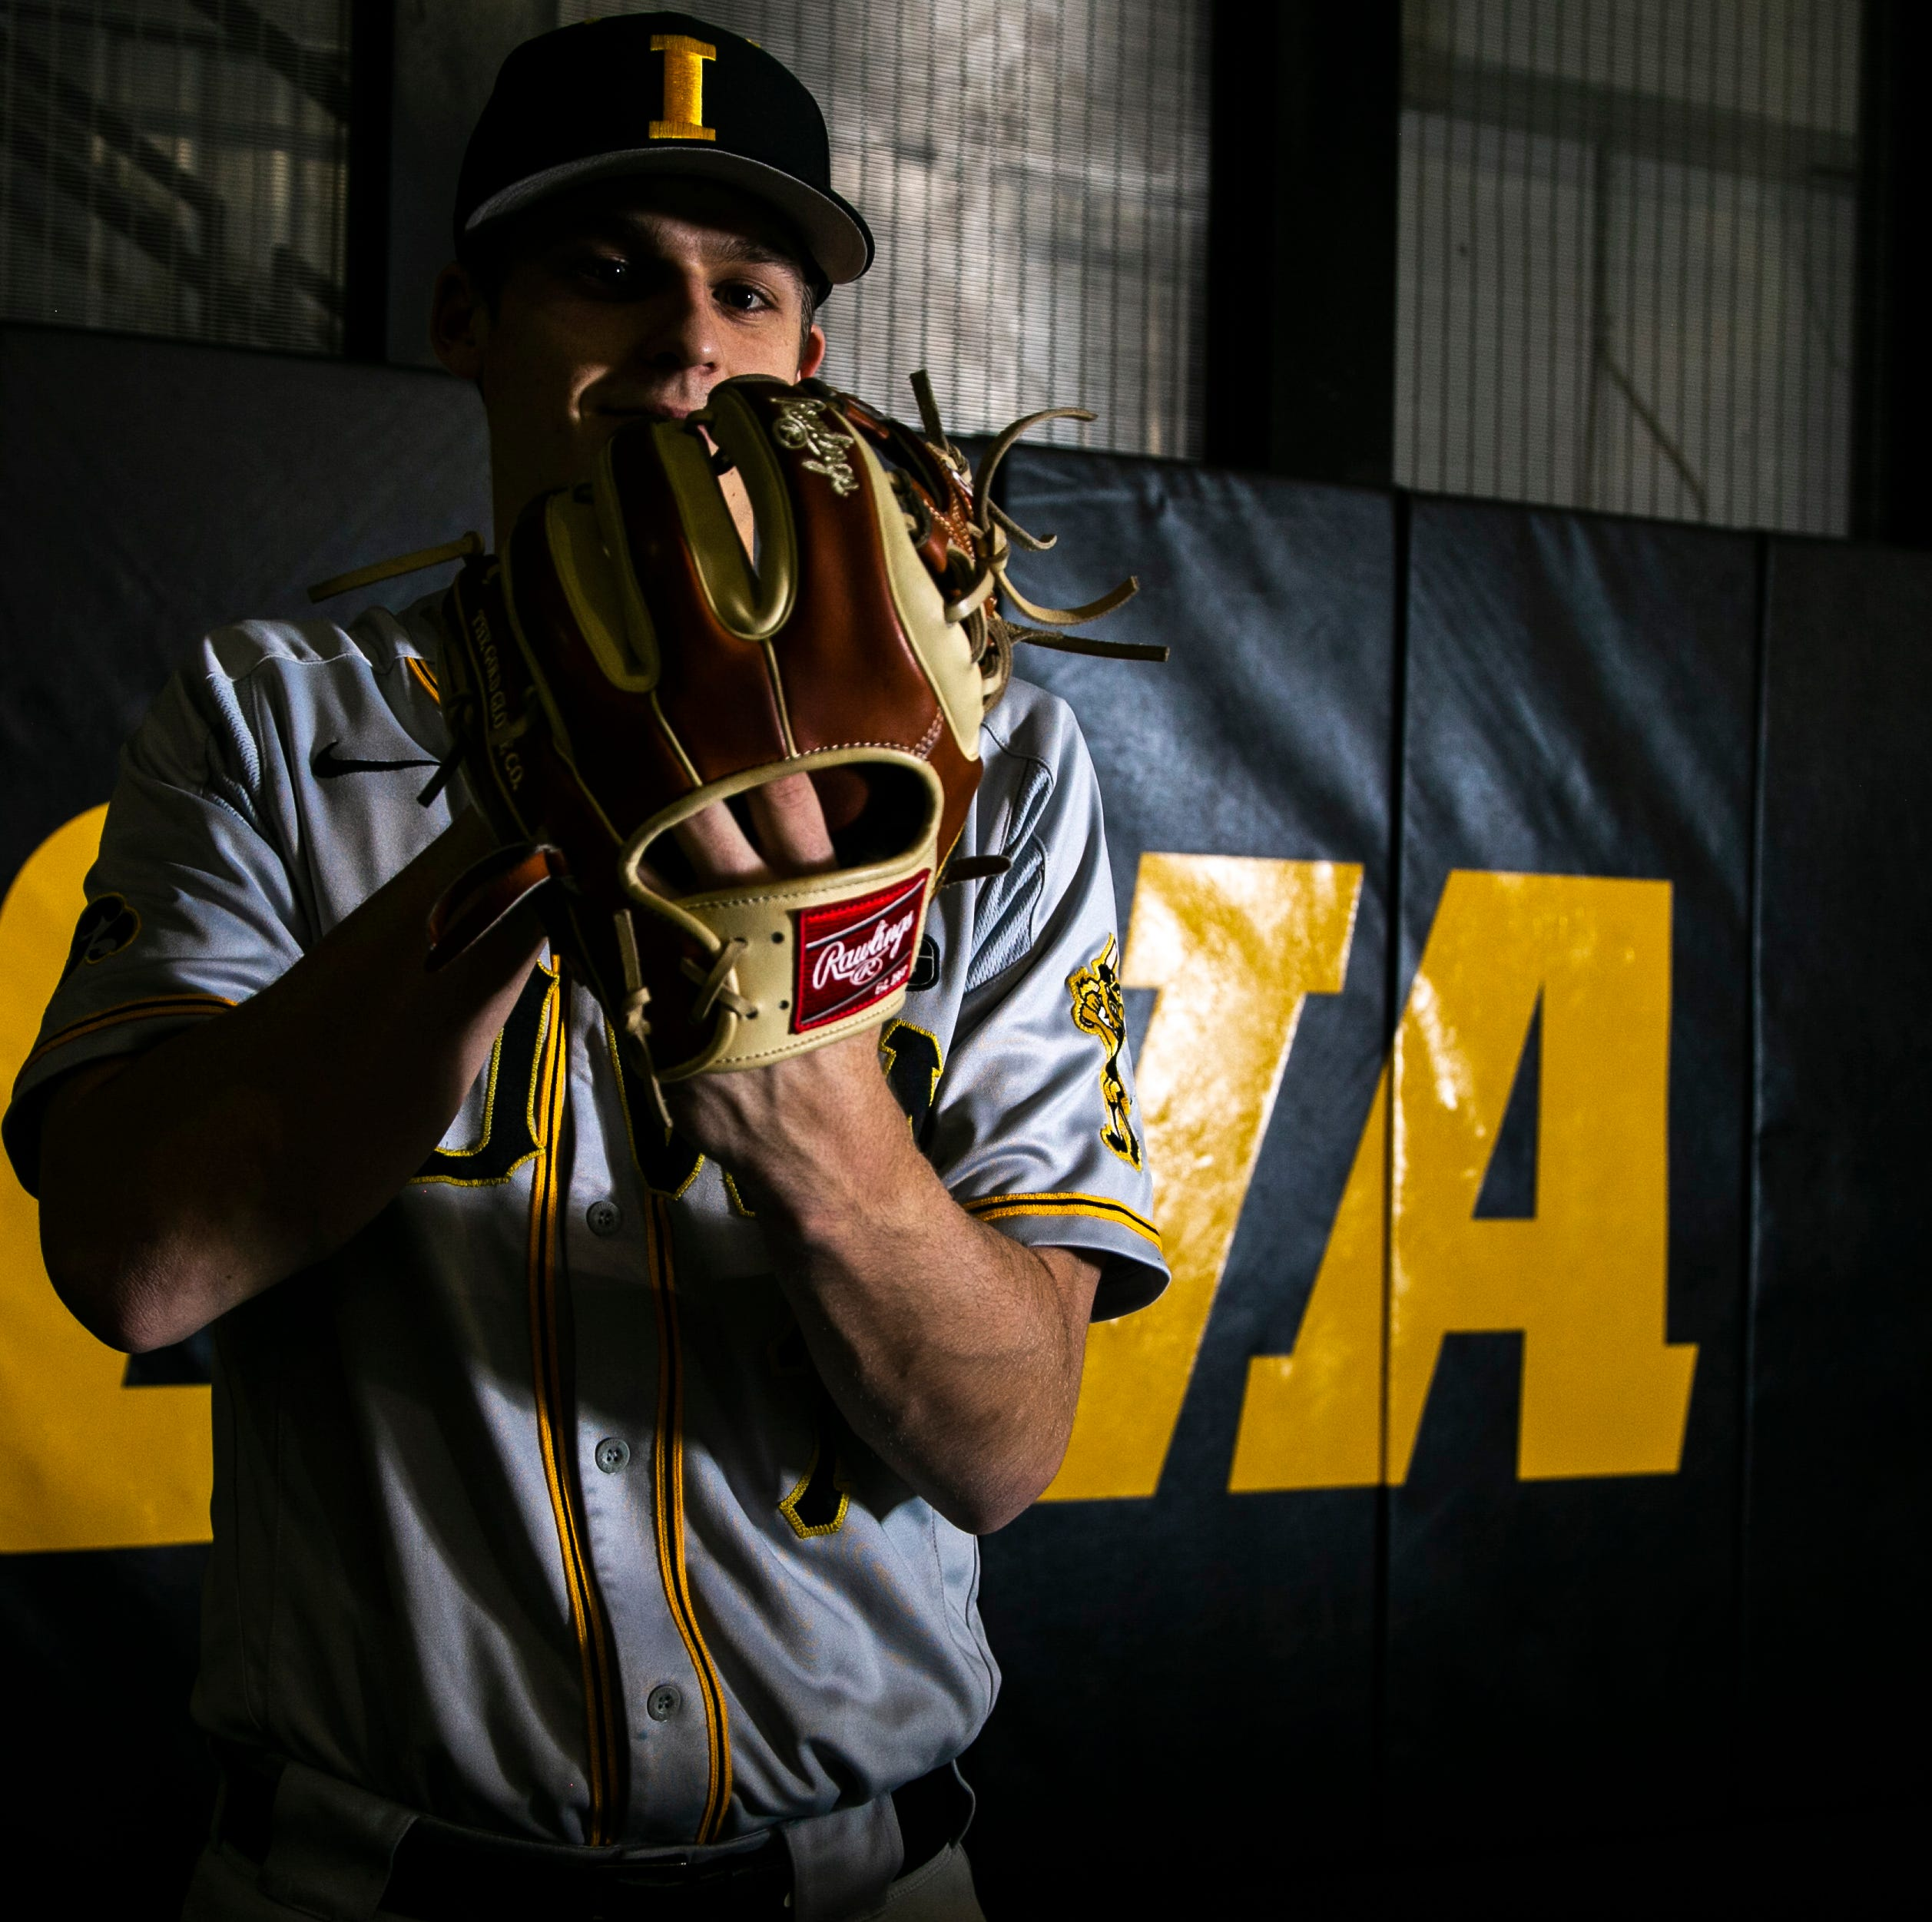 Iowa baseball: Grant Judkins' six no-hit innings propel Hawkeyes past Marshall